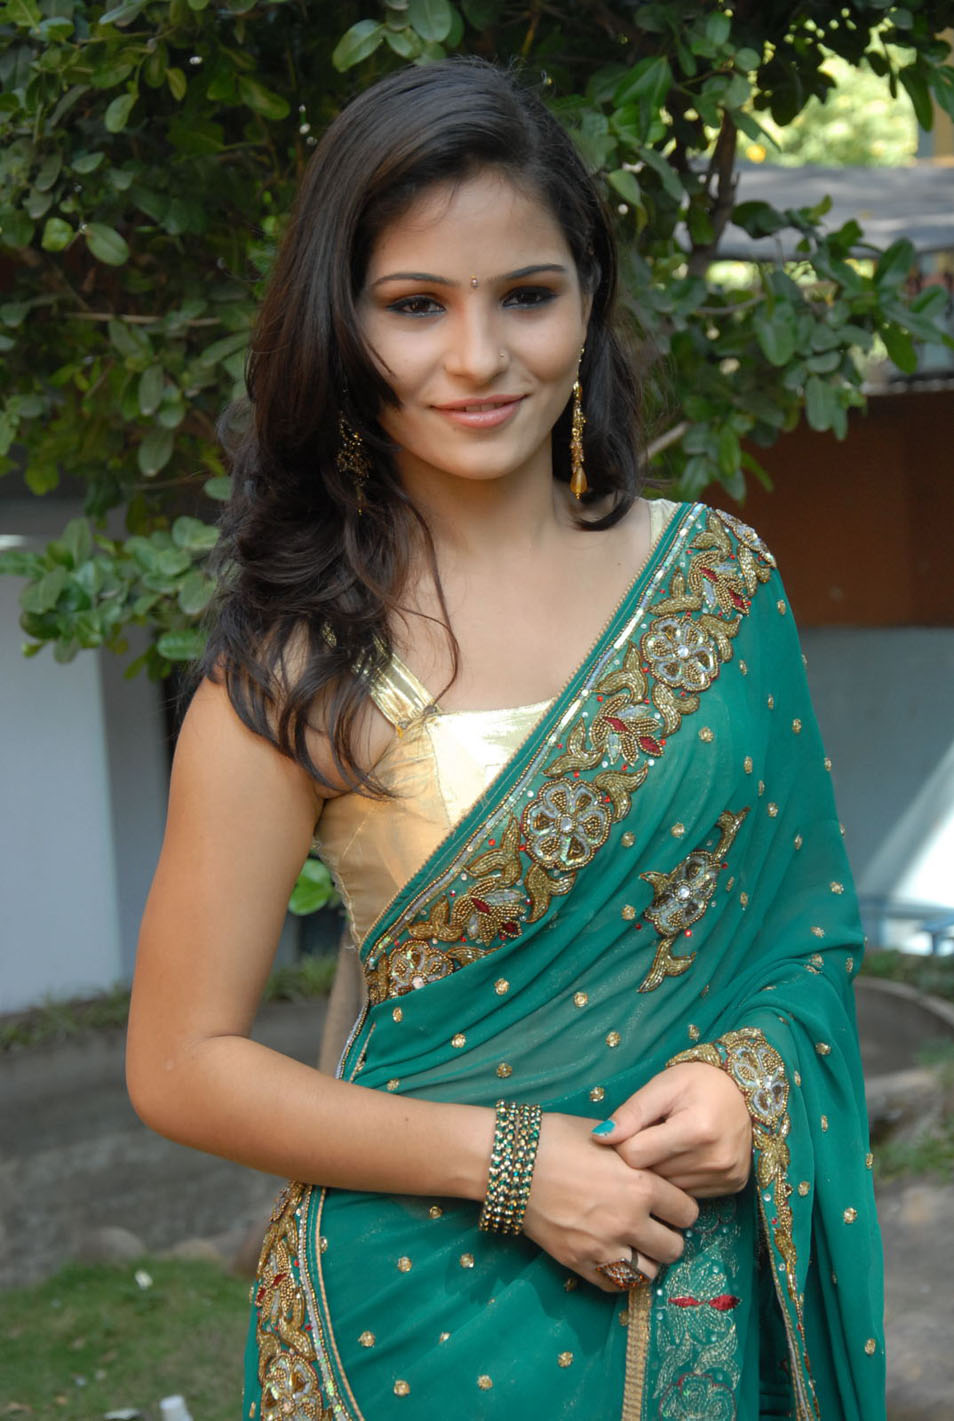 Jarabbani looks cute in saree new photos